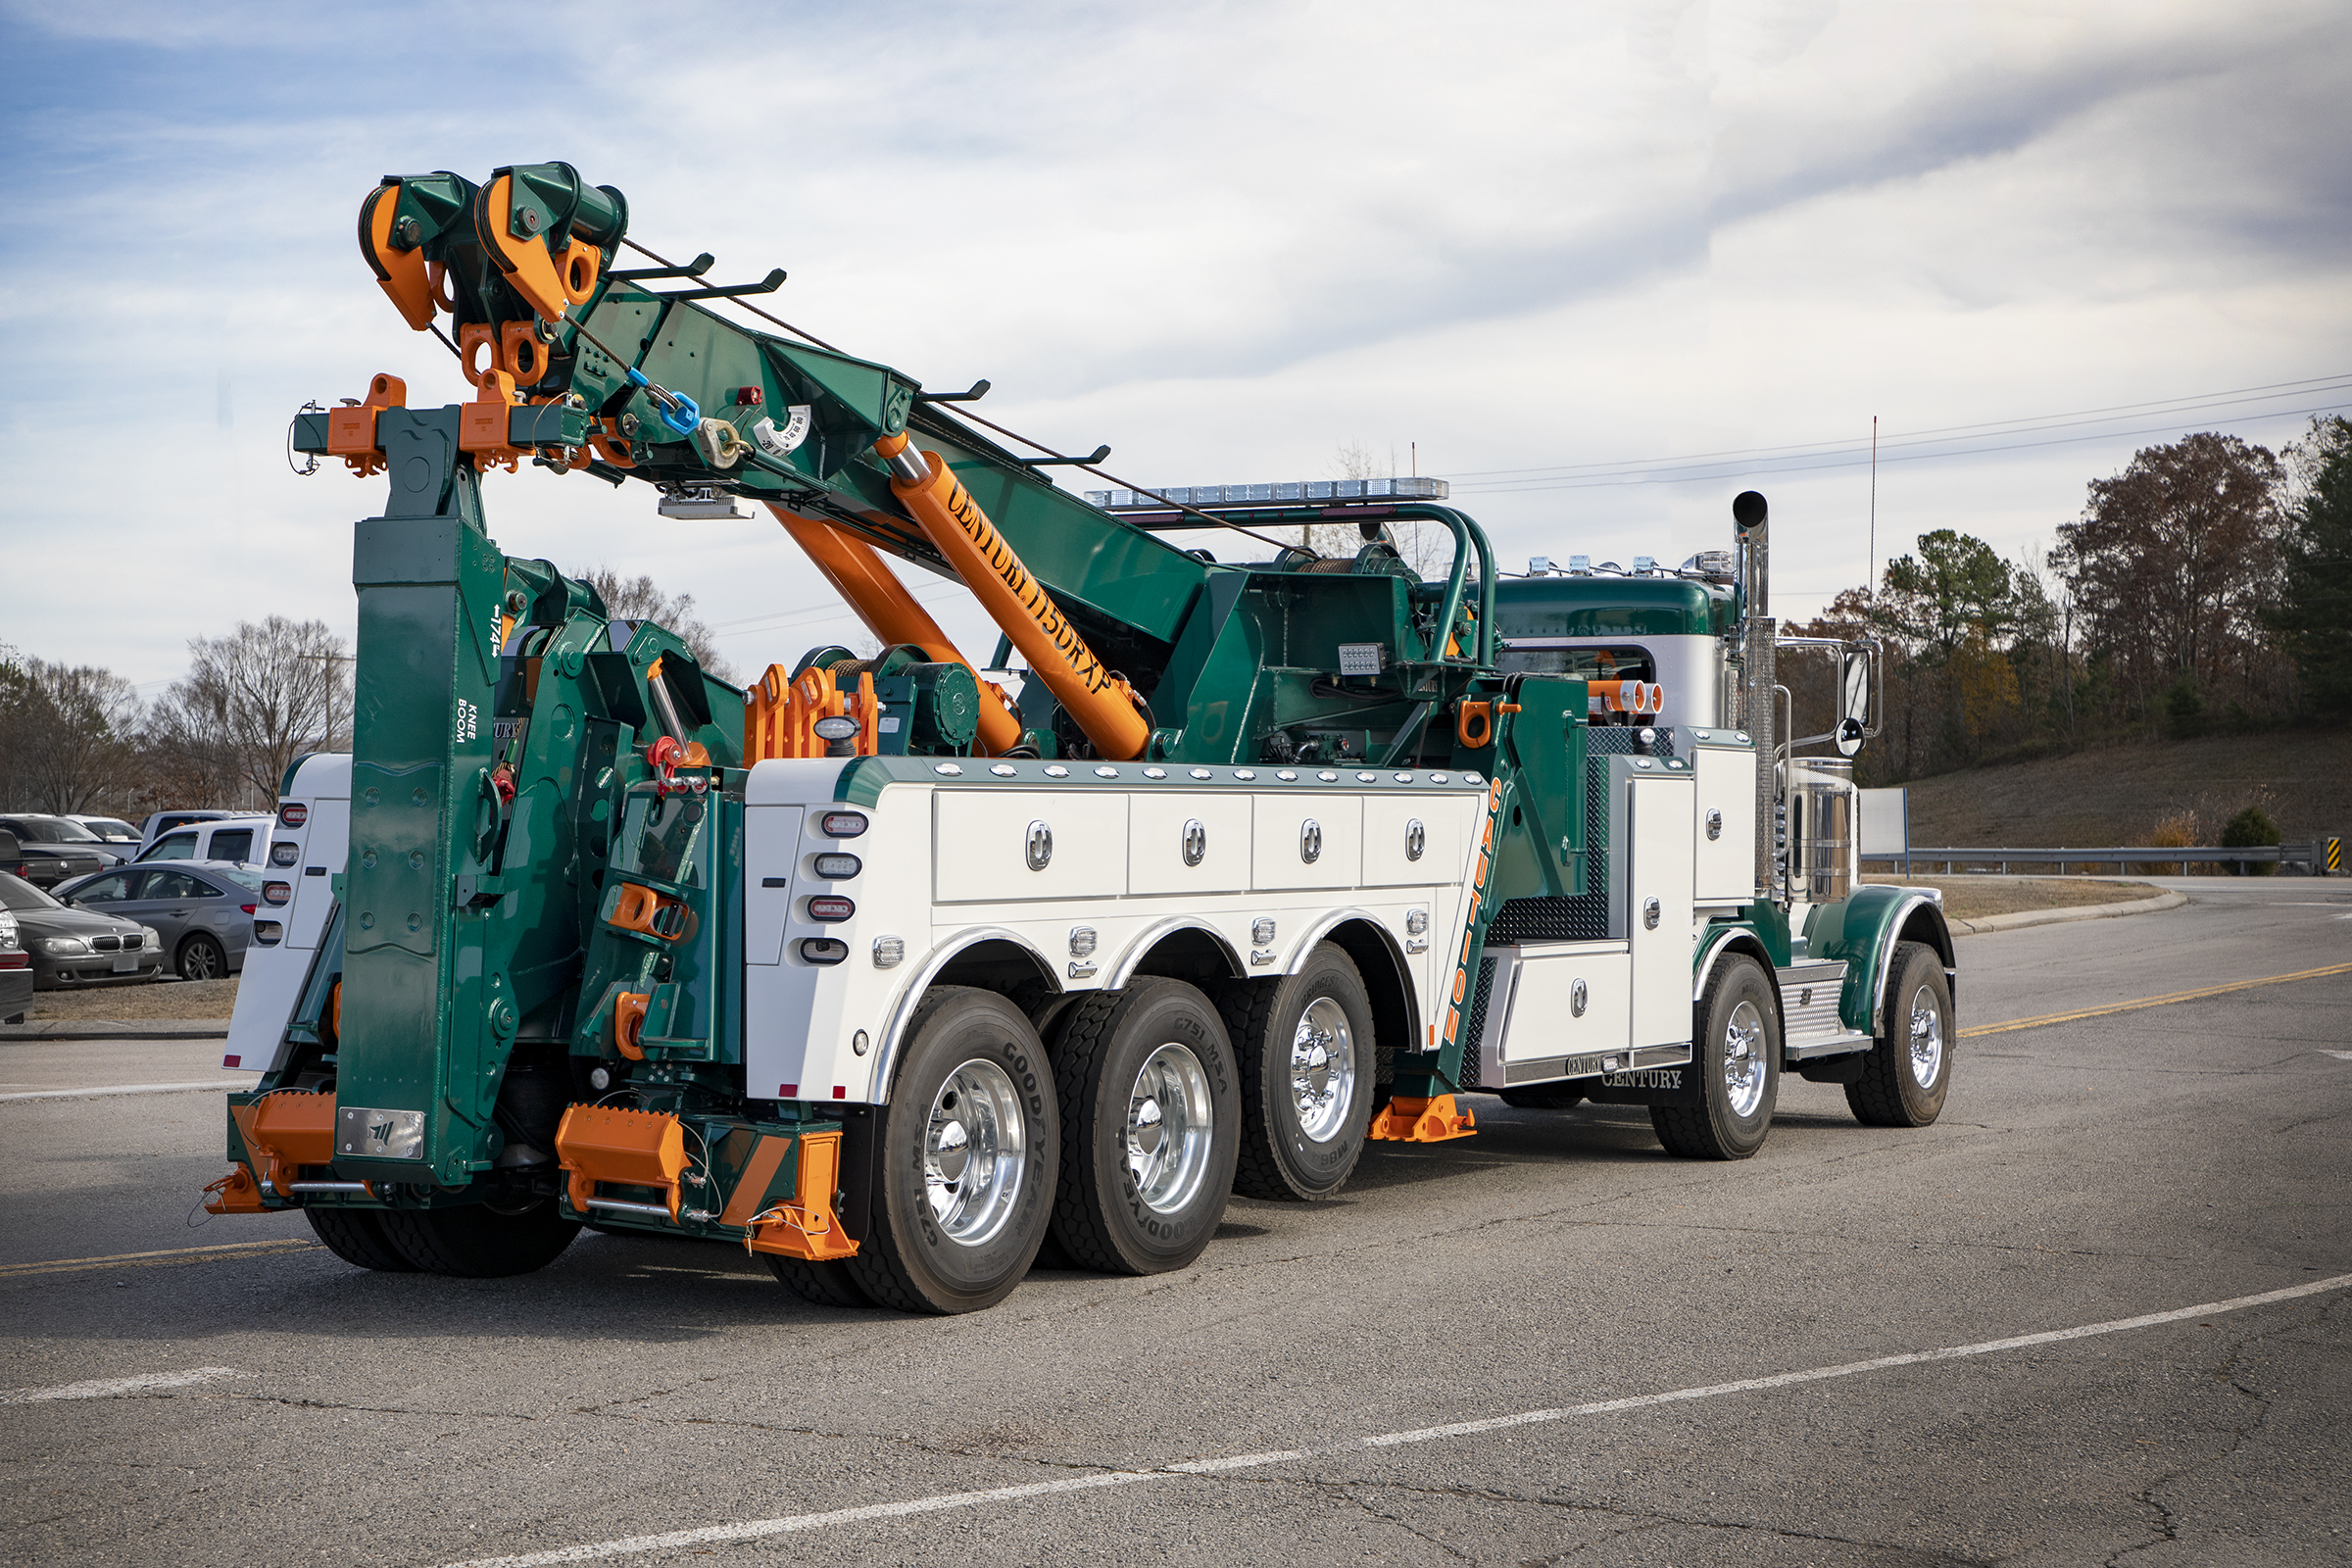 Century® 1150 Rotator provides a superior weight-forward design for towing